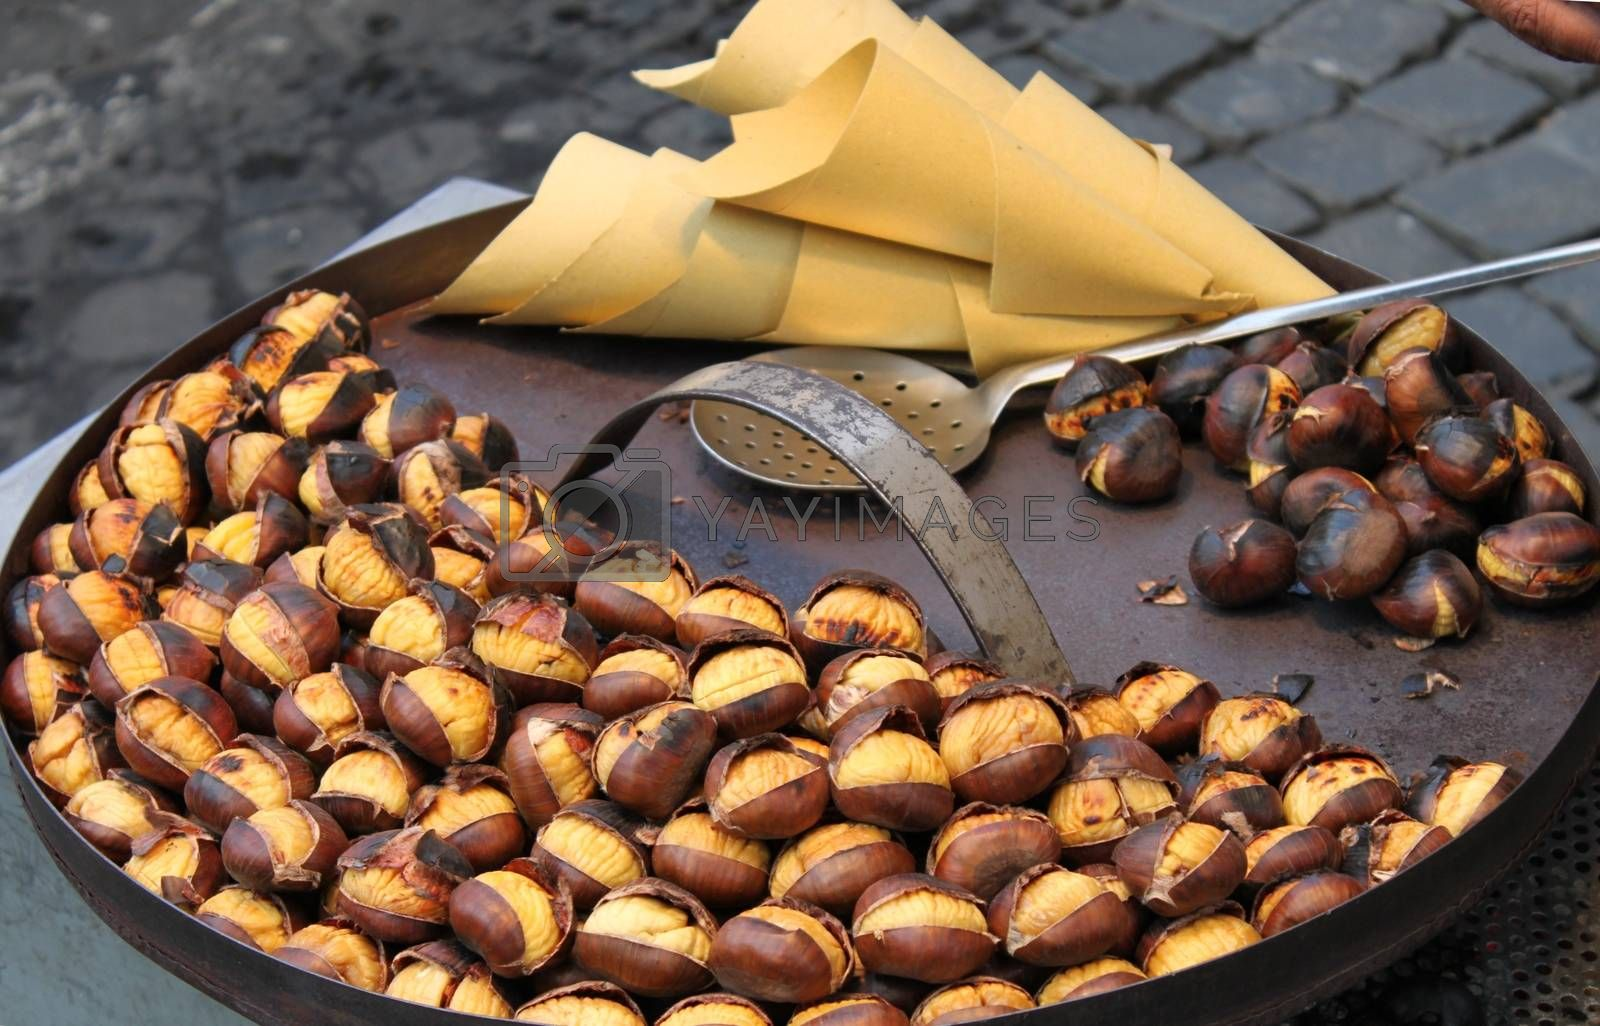 Grilled chestnuts by alessandro0770